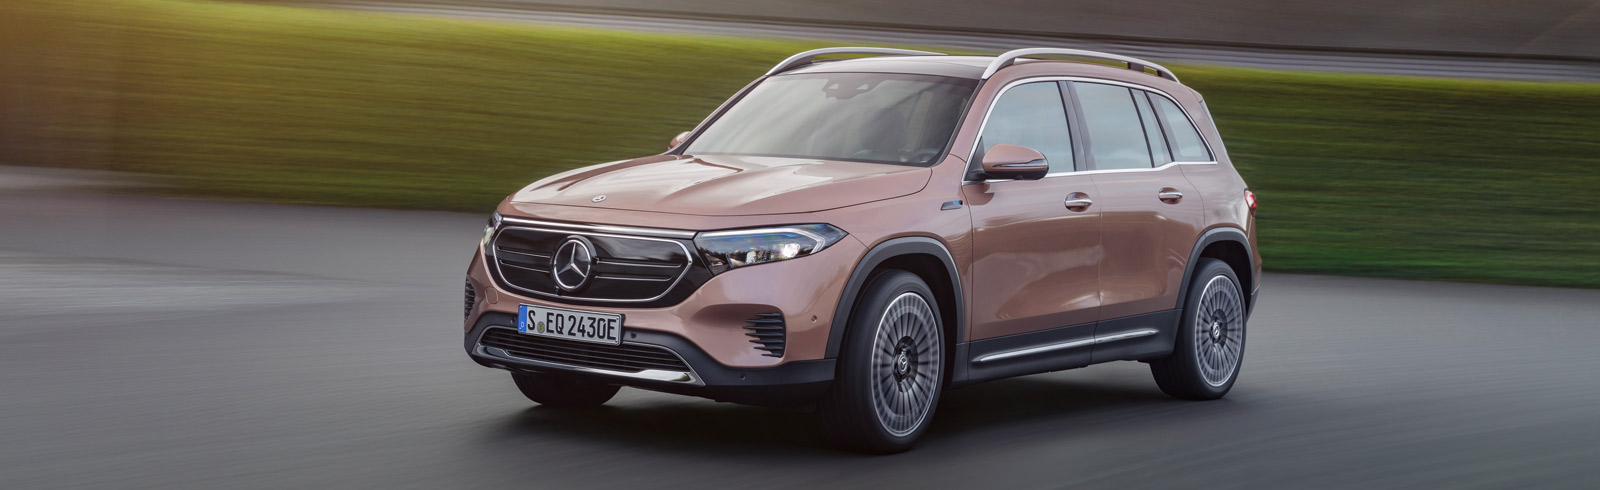 Mercedes-Benz EQB - an all-electric compact SUV with up to seven seats enters production